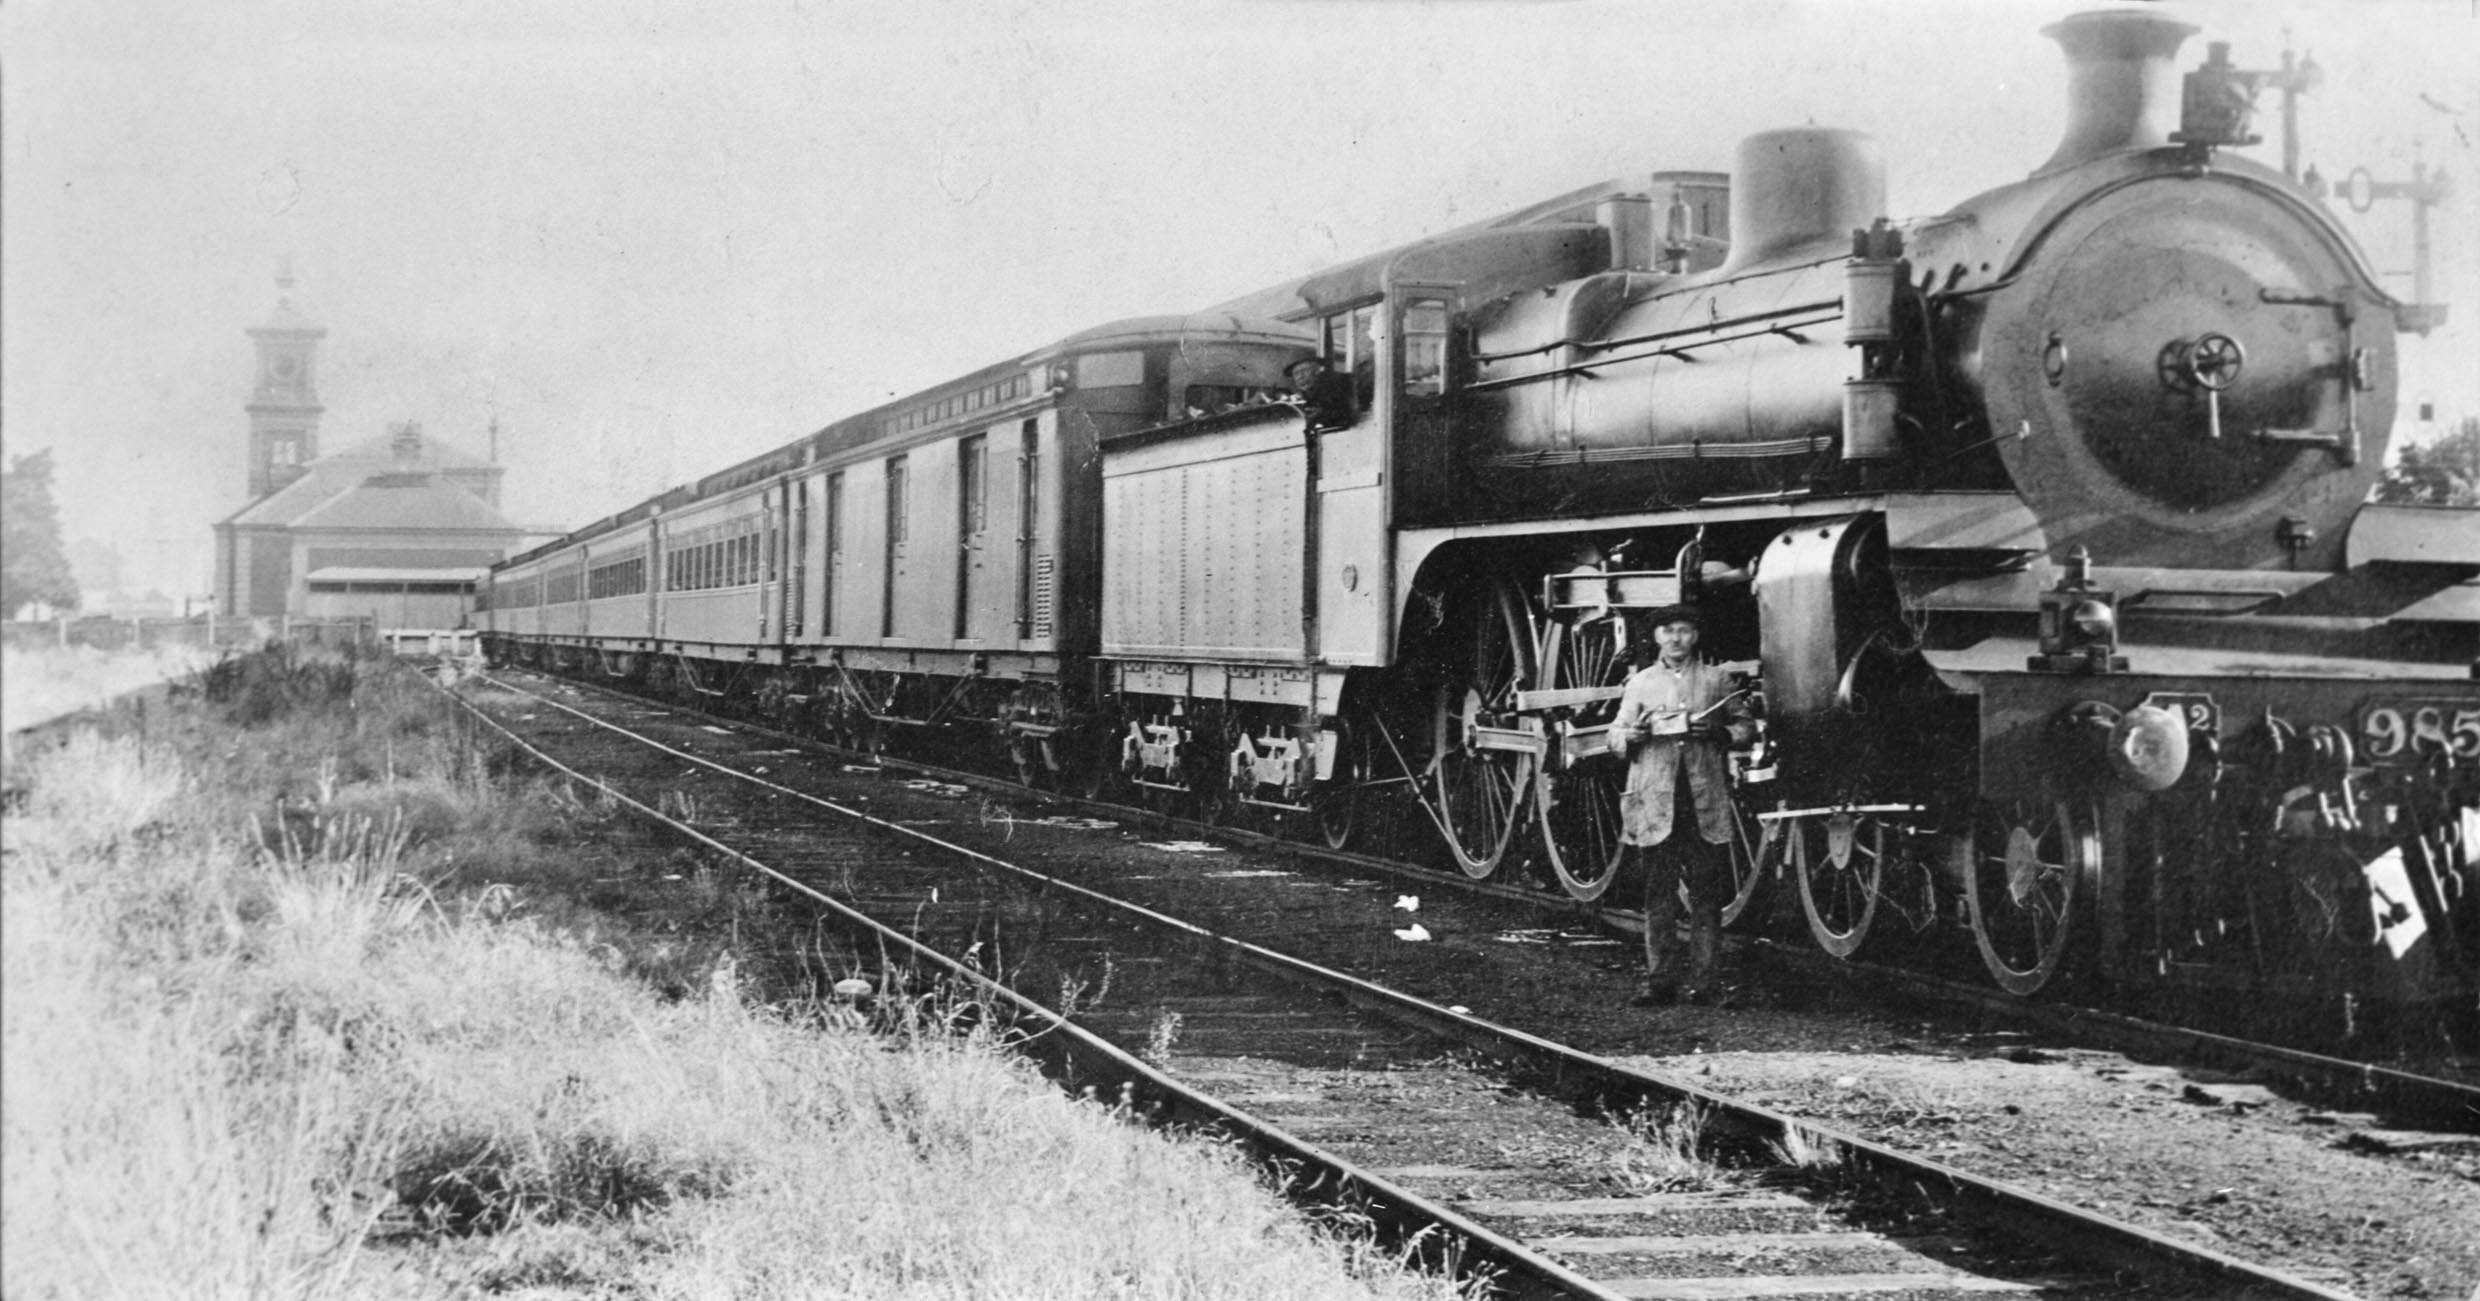 steam locomotive A2-985, about 1919